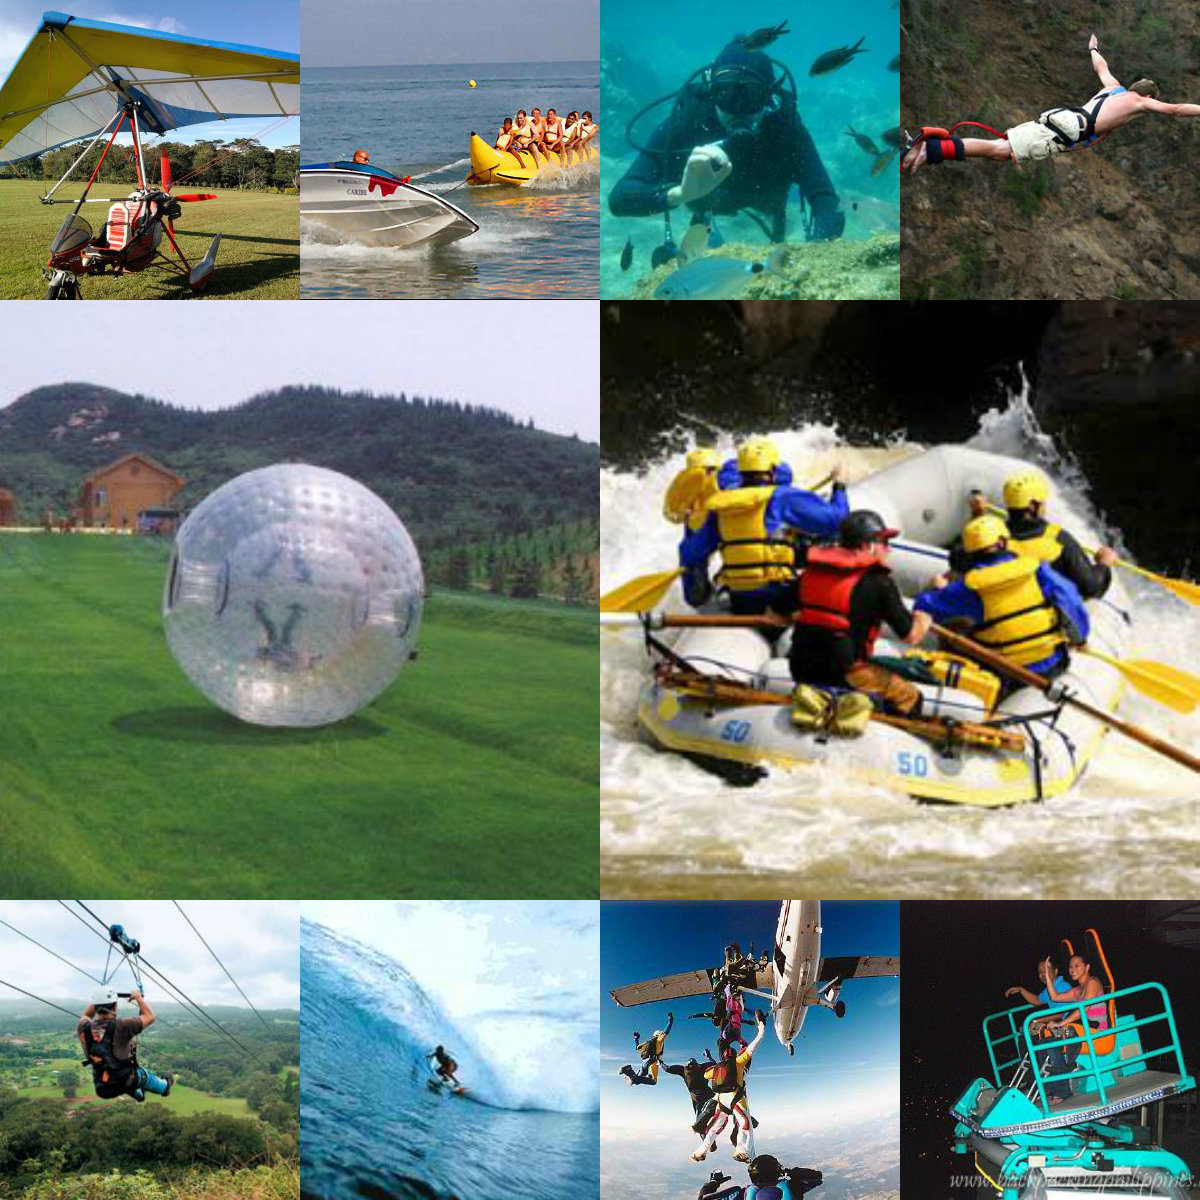 Adventure sports collage